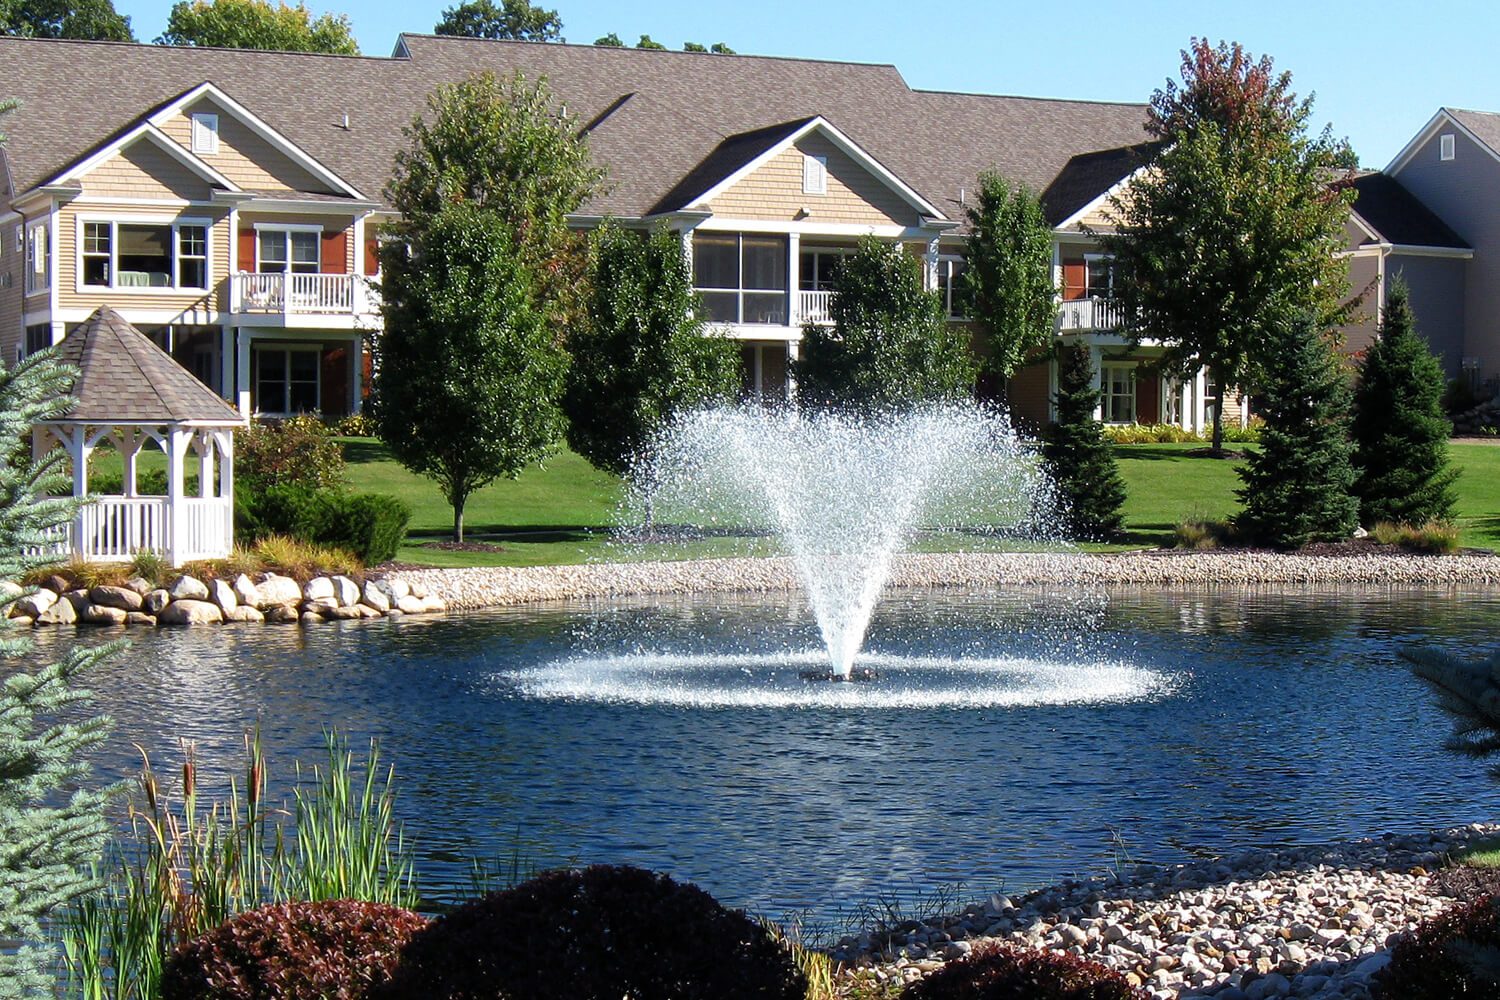 One of Otterbine's Gemini Aerating Fountains in a residential area